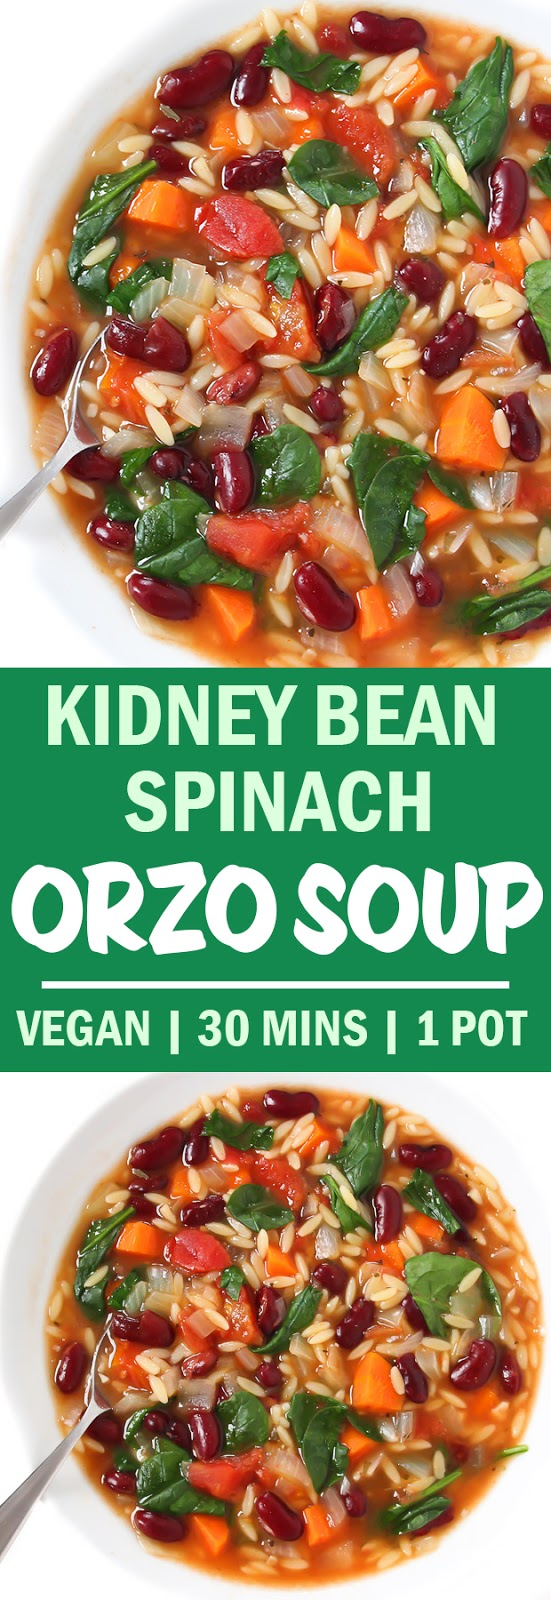 Photo collage of kidney bean spinach orzo soup